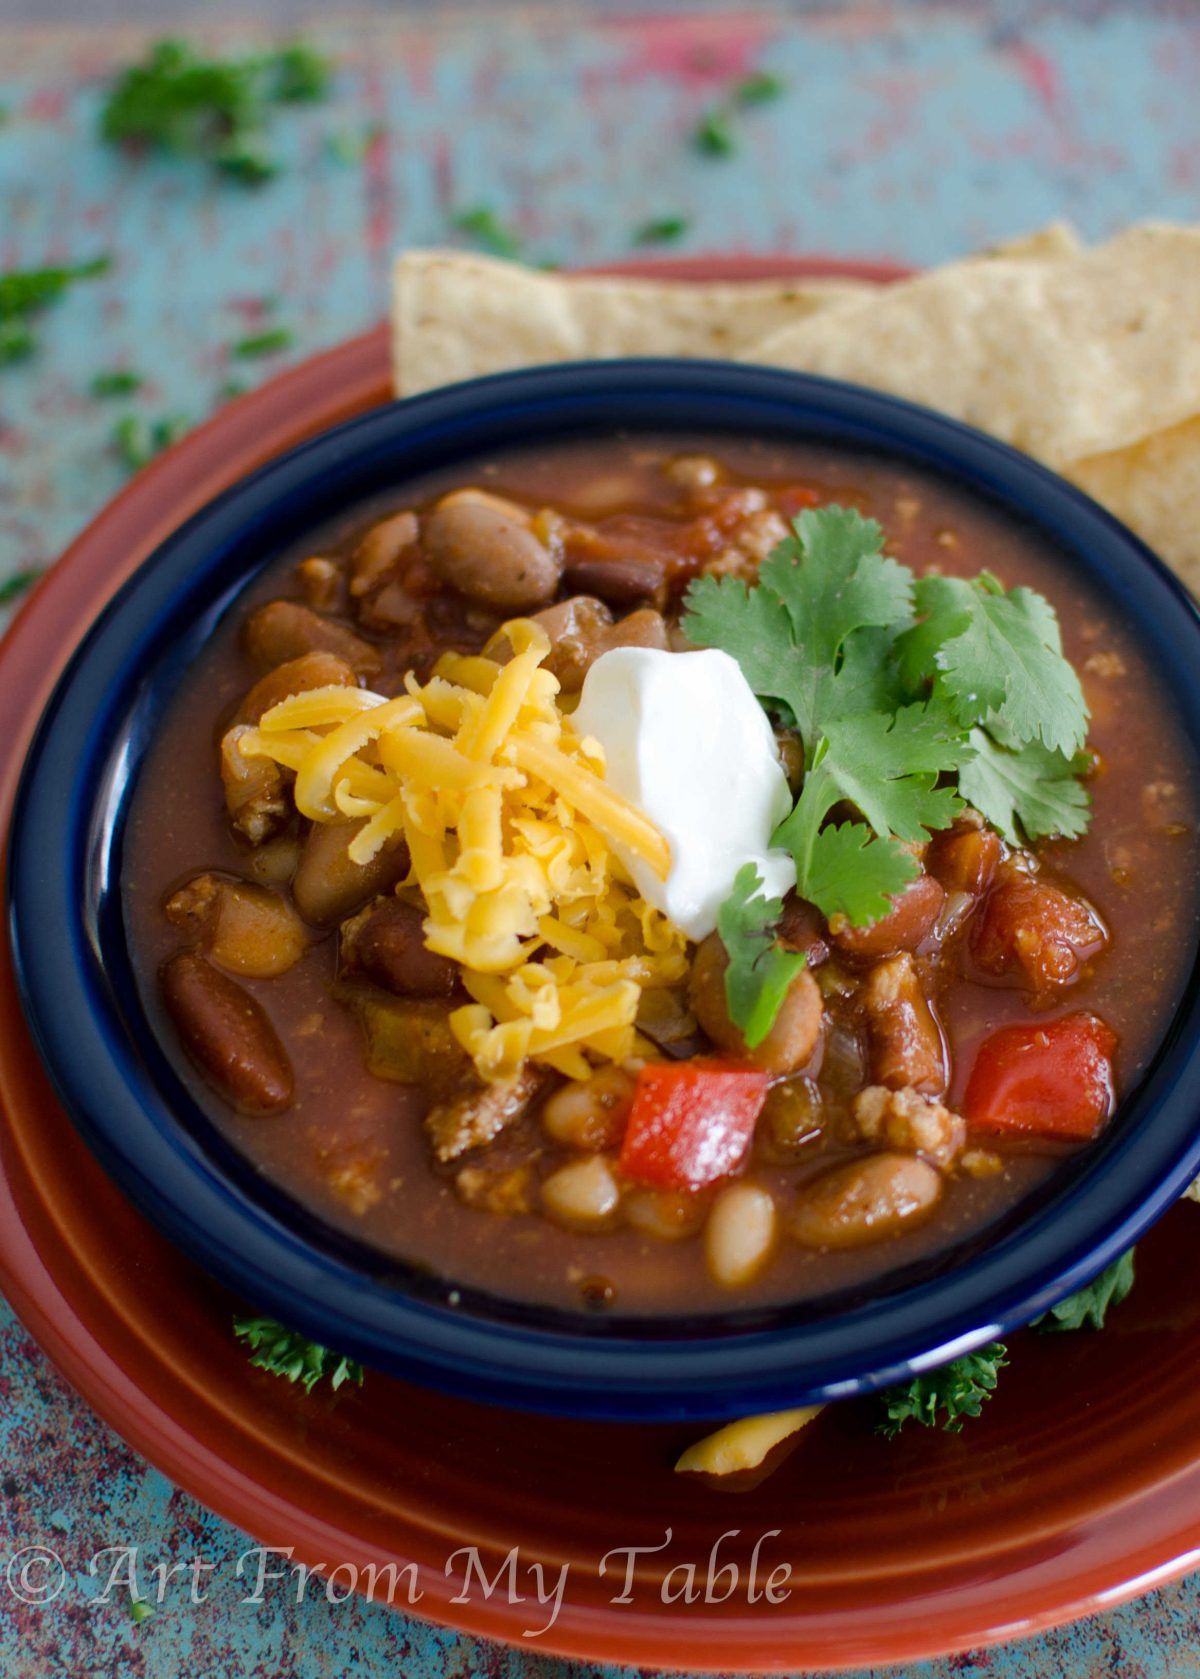 Healthy Turkey Chili  Healthy Turkey Chili Slow Cooker Art From My Table